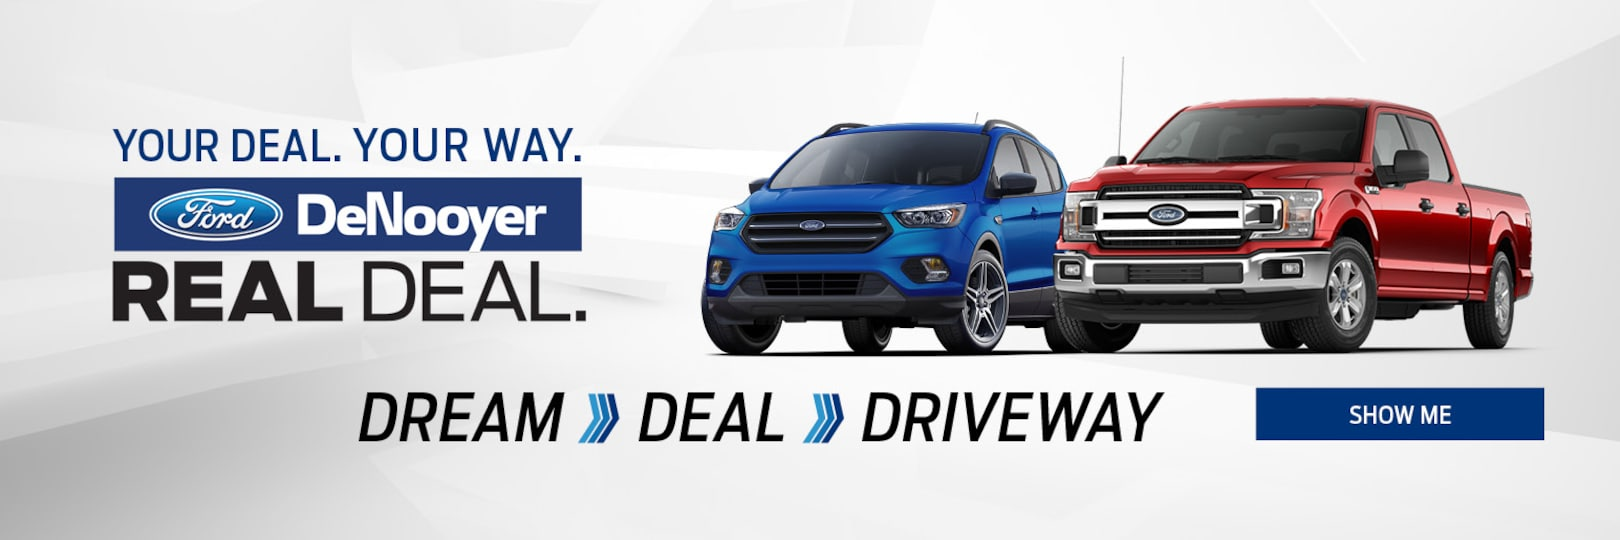 Vicksburg's DeNooyer Ford | New and Used Ford Cars